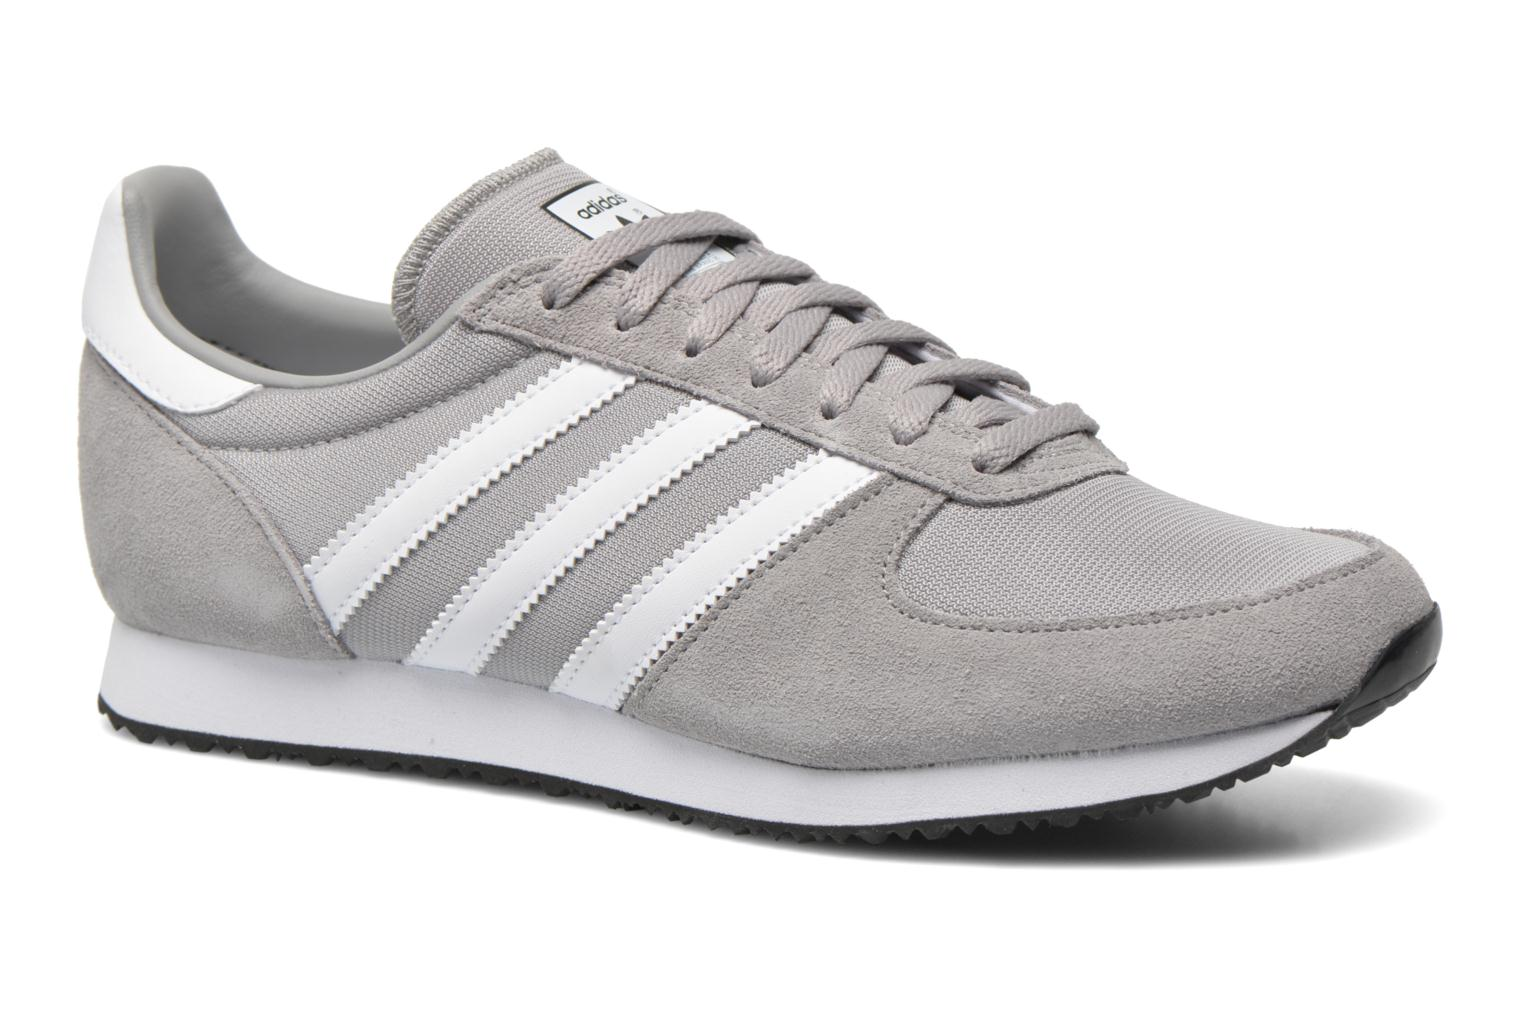 Baskets Adidas Originals Zx Racer Gris vue détail/paire